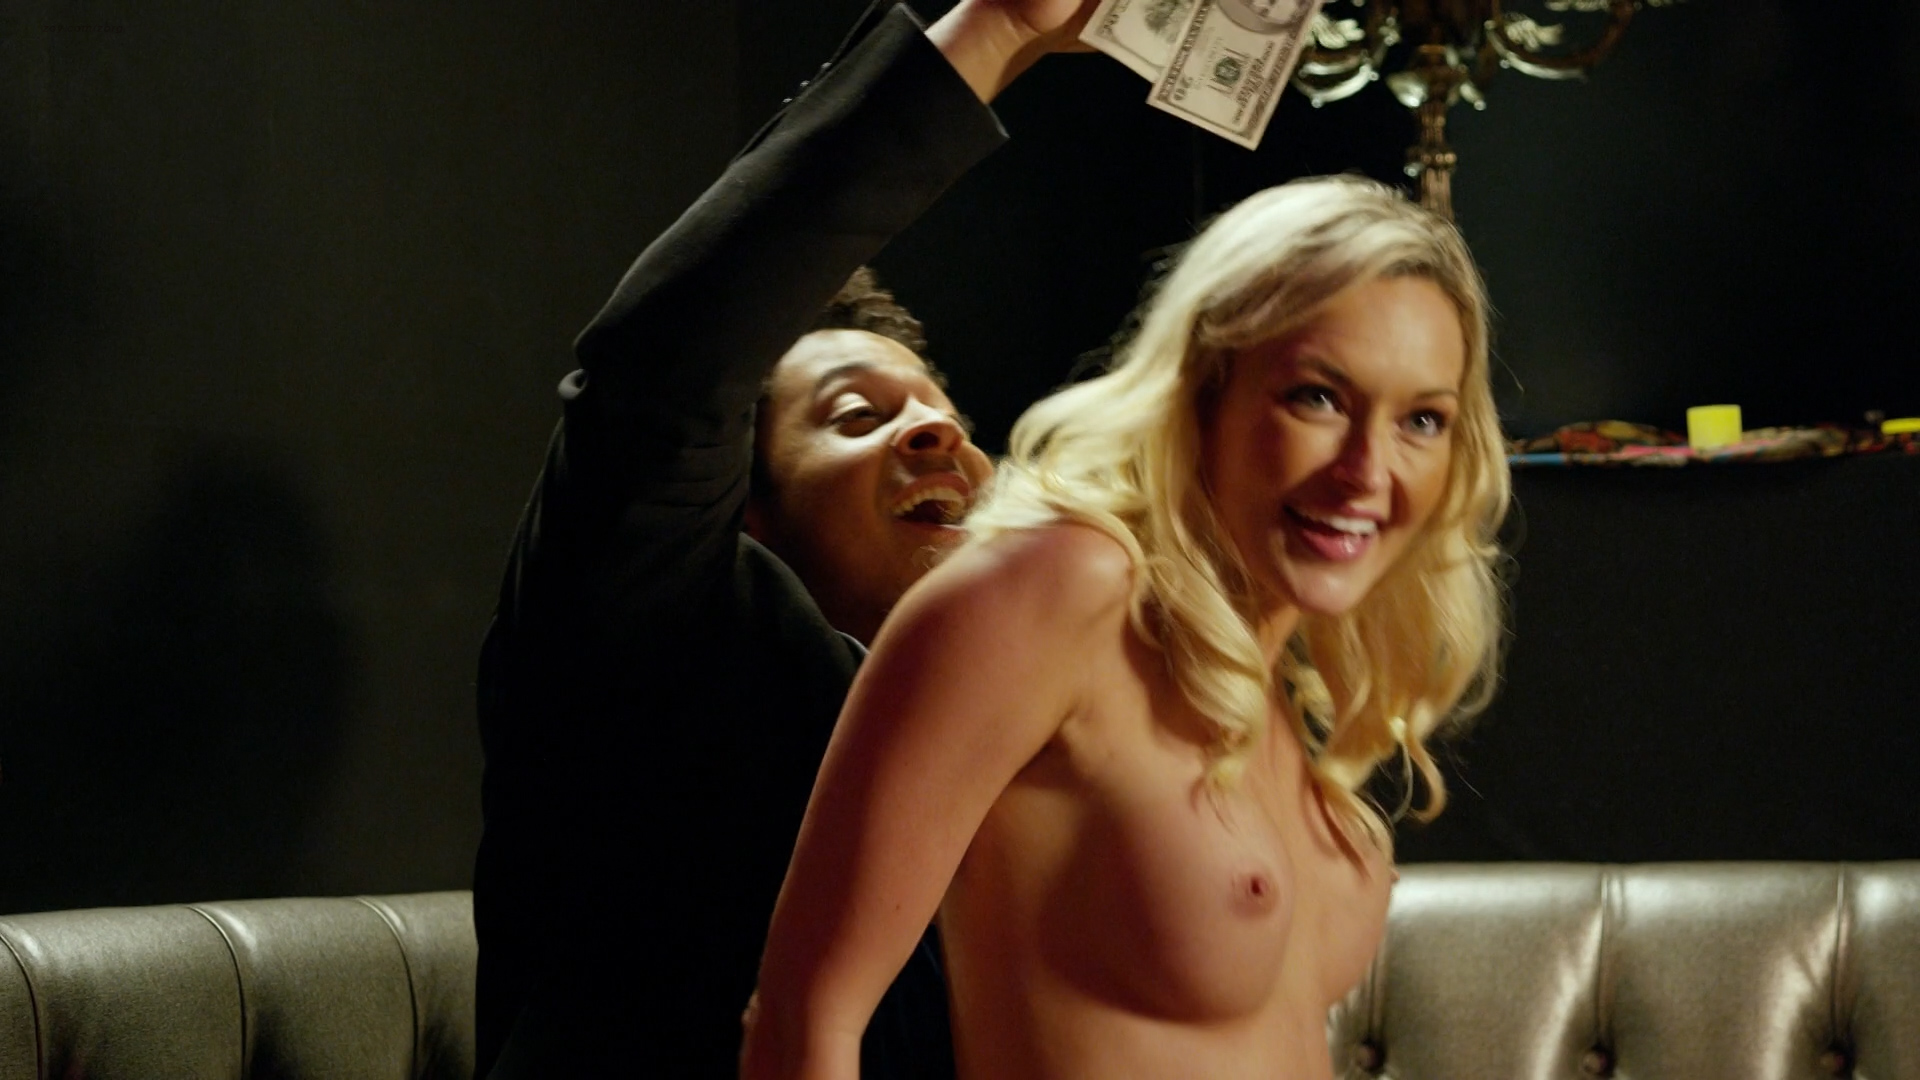 Heather Paige Cohn nude sex Samantha Stewart nude Megan Albertus nude sex and others all nude - Bachelor Night (2014) hd1080p (3)